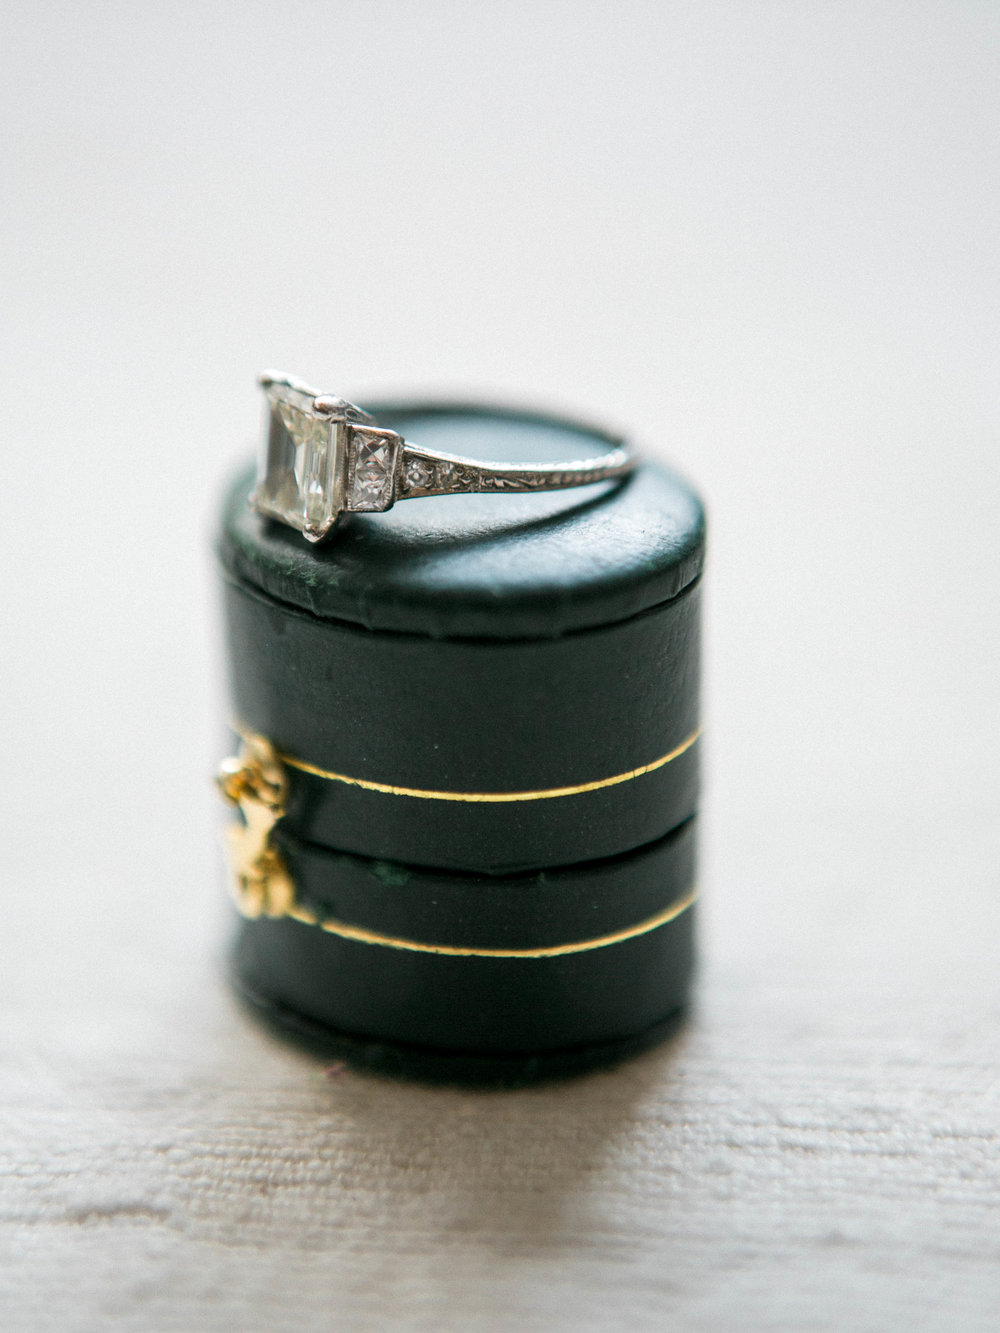 Trumpet and Horn Engagement Ring - www.jleephotos.com